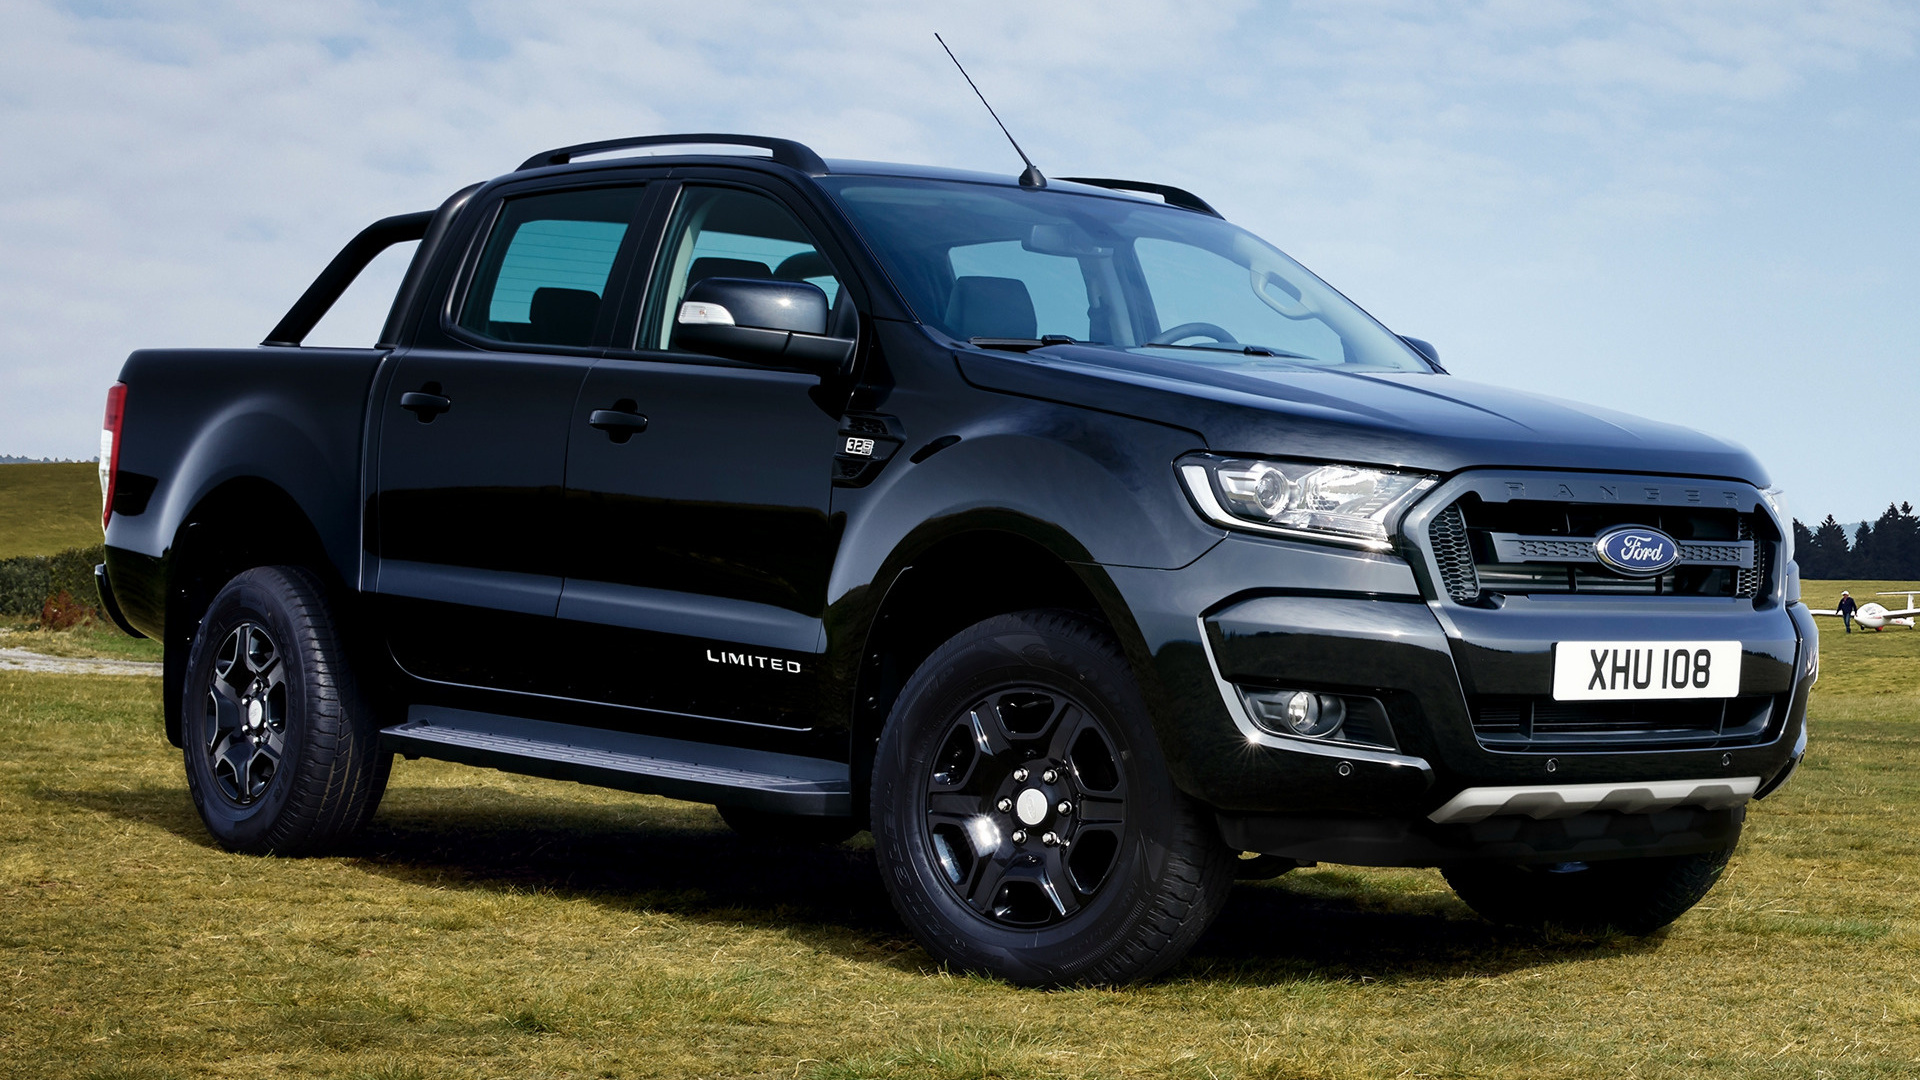 ford ranger limited double cab black edition 2017 wallpapers and hd images car pixel. Black Bedroom Furniture Sets. Home Design Ideas